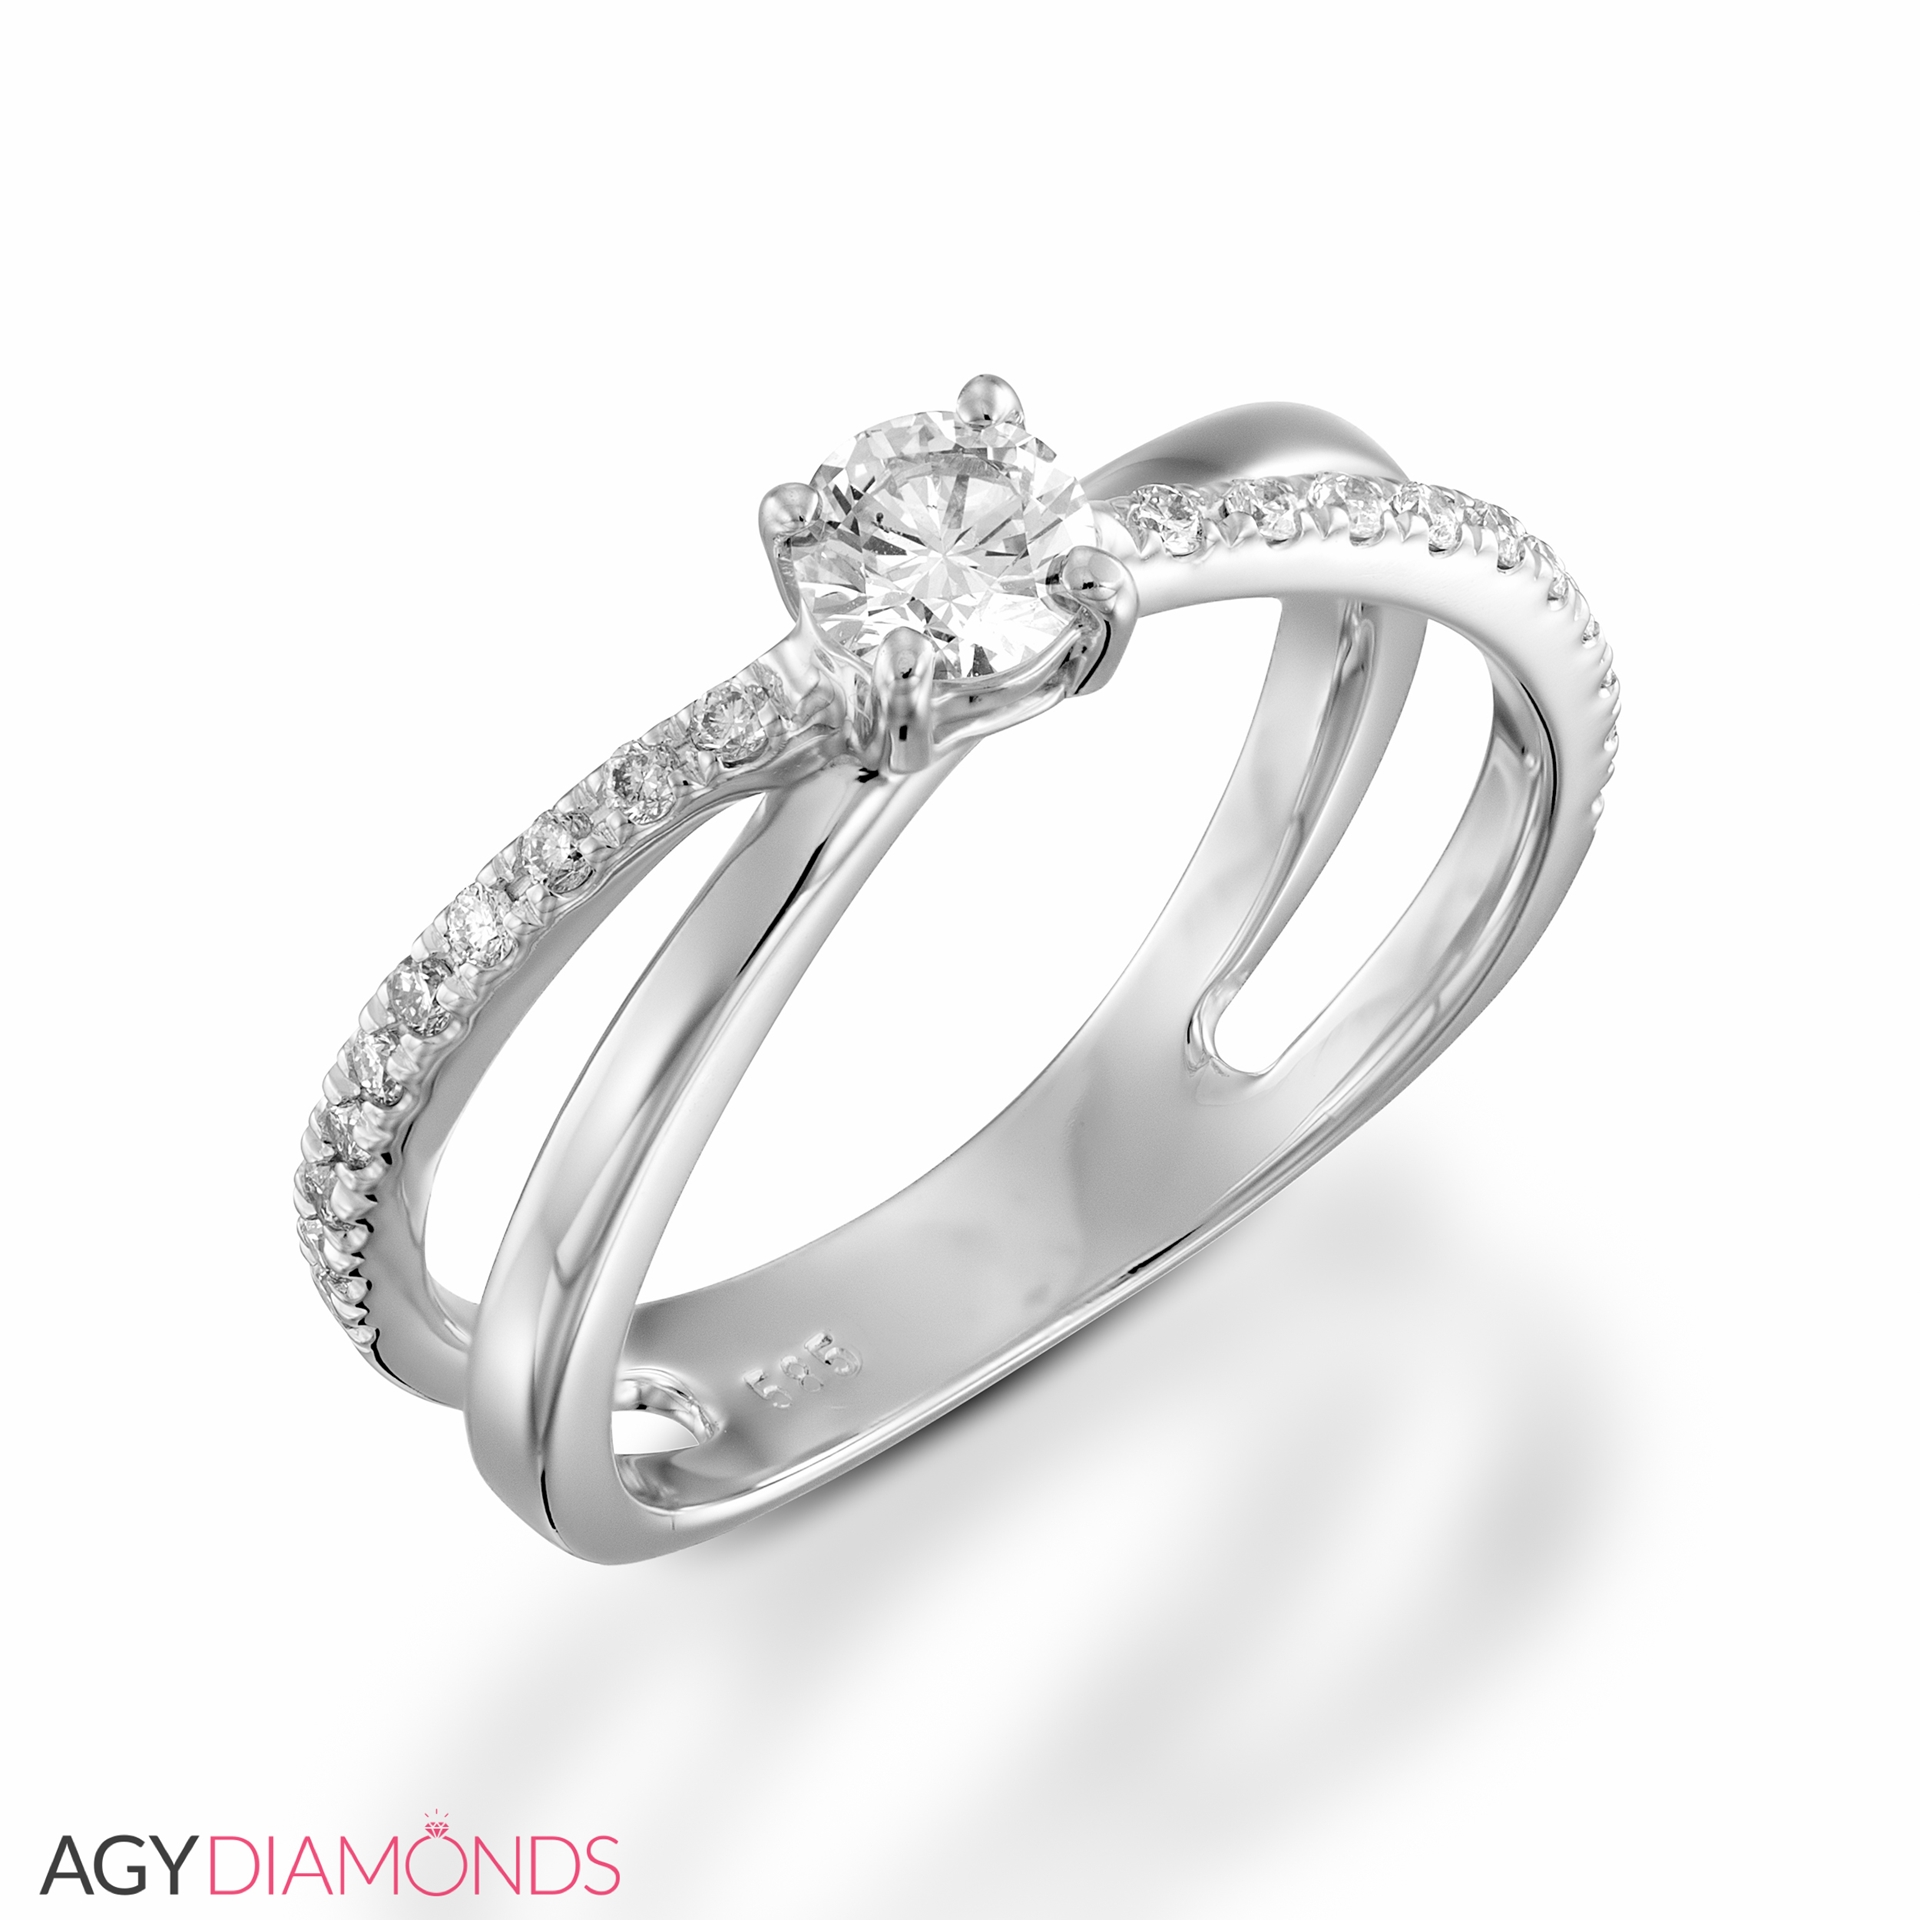 ring rings engagement designer cut princess designs gorgeous wedwebtalks